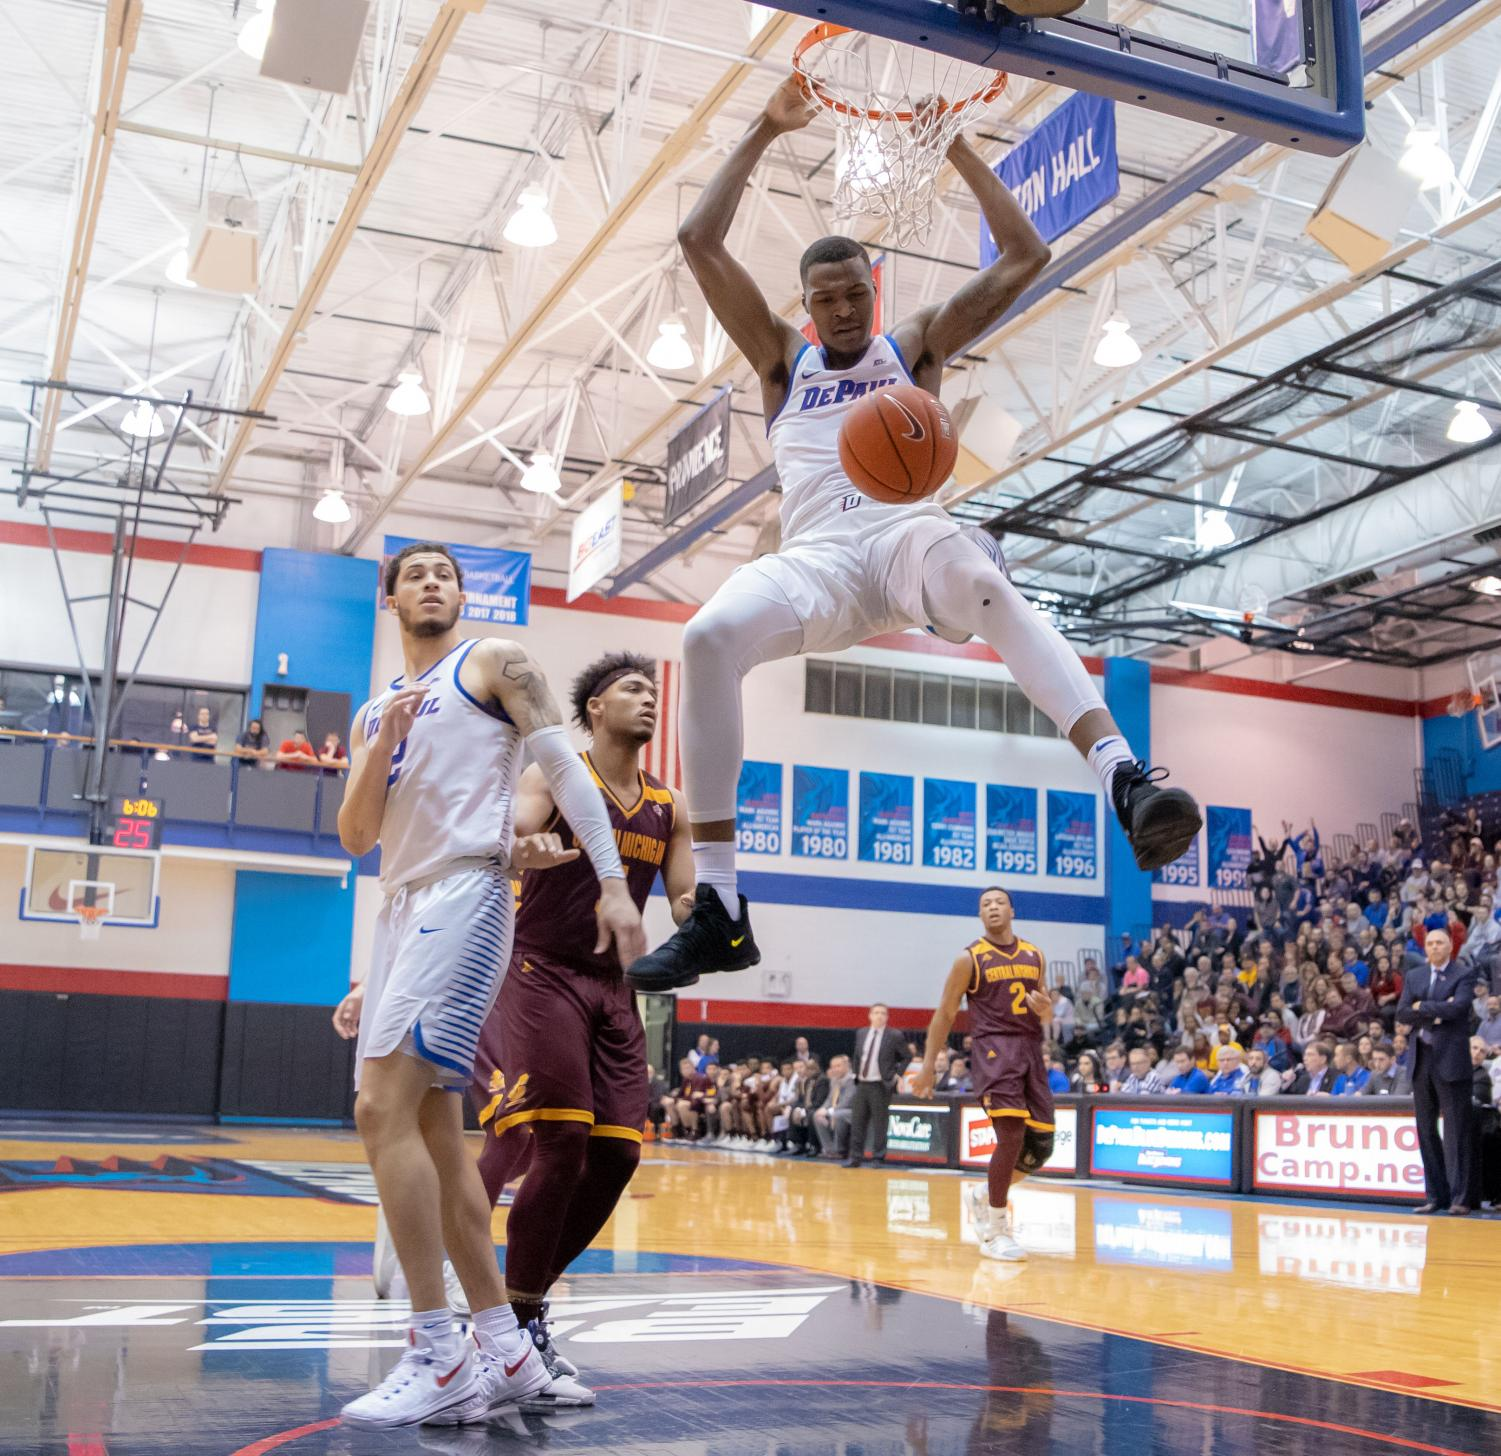 Sophomore forward Paul Reed dunks against Central Michigan during the Roman Catholic Basketball Invitational Wednesday night at McGrath-Phillips Arena. DePaul advanced to the quarterfinals of the tournament with a 100-86 victory. Jonathan Aguilar | The DePaulia